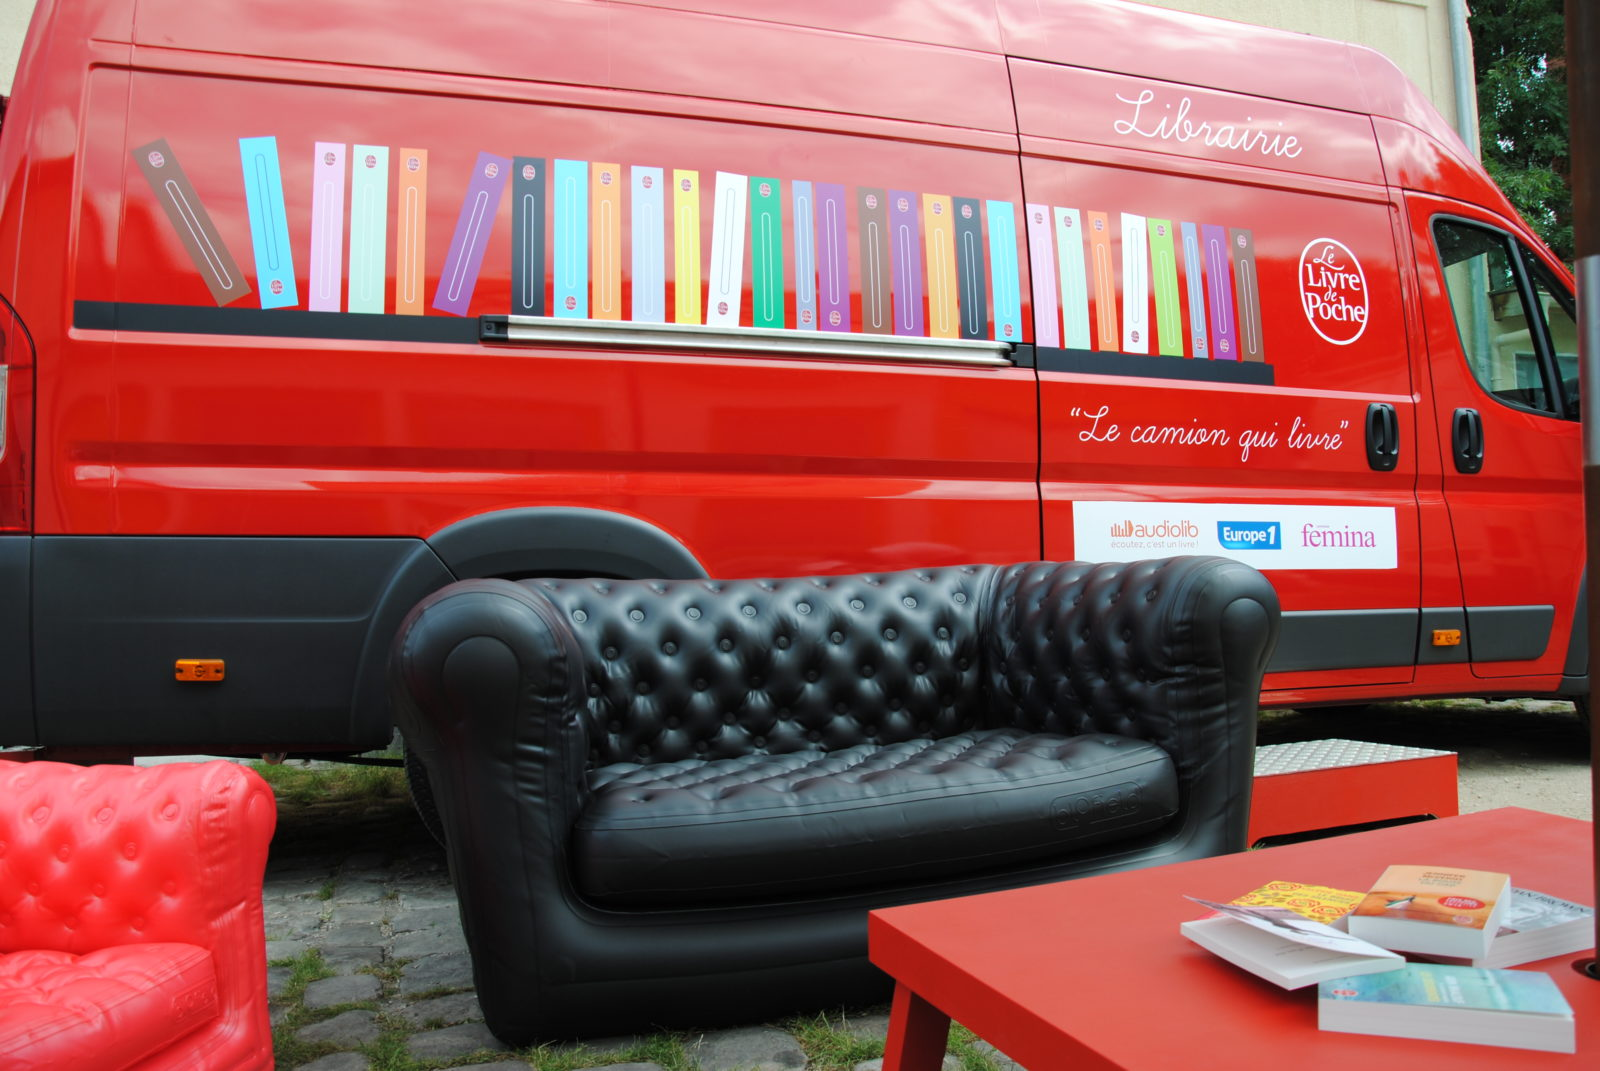 camion-librairie-celize-amenagement-interieur-covering